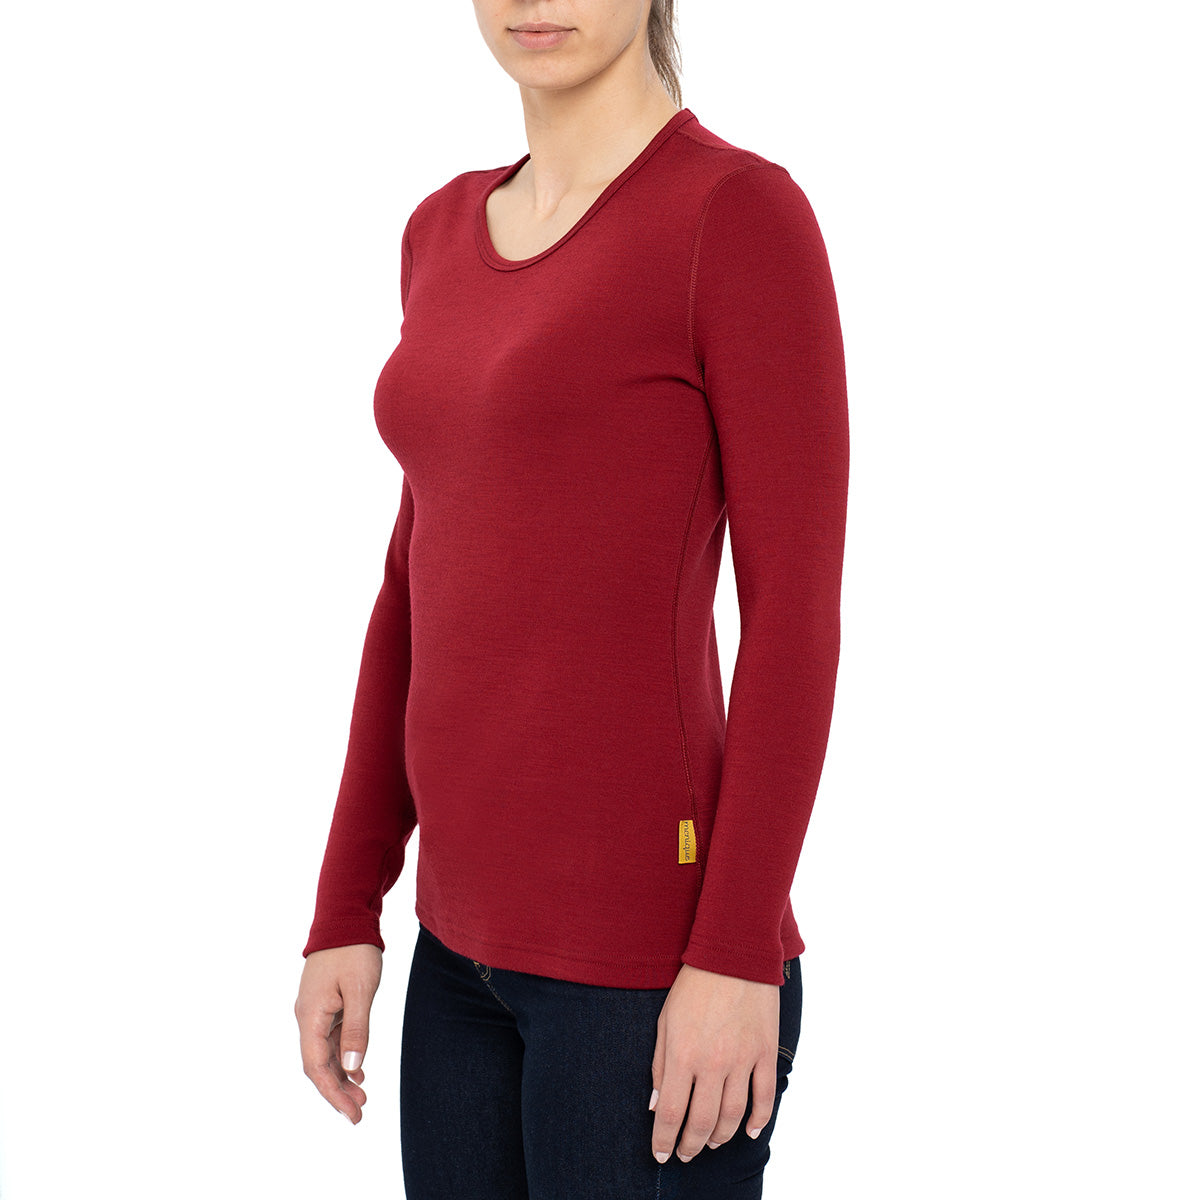 menique 	Women's Merino 250 Long Sleeve Crew Royal Cherry Color